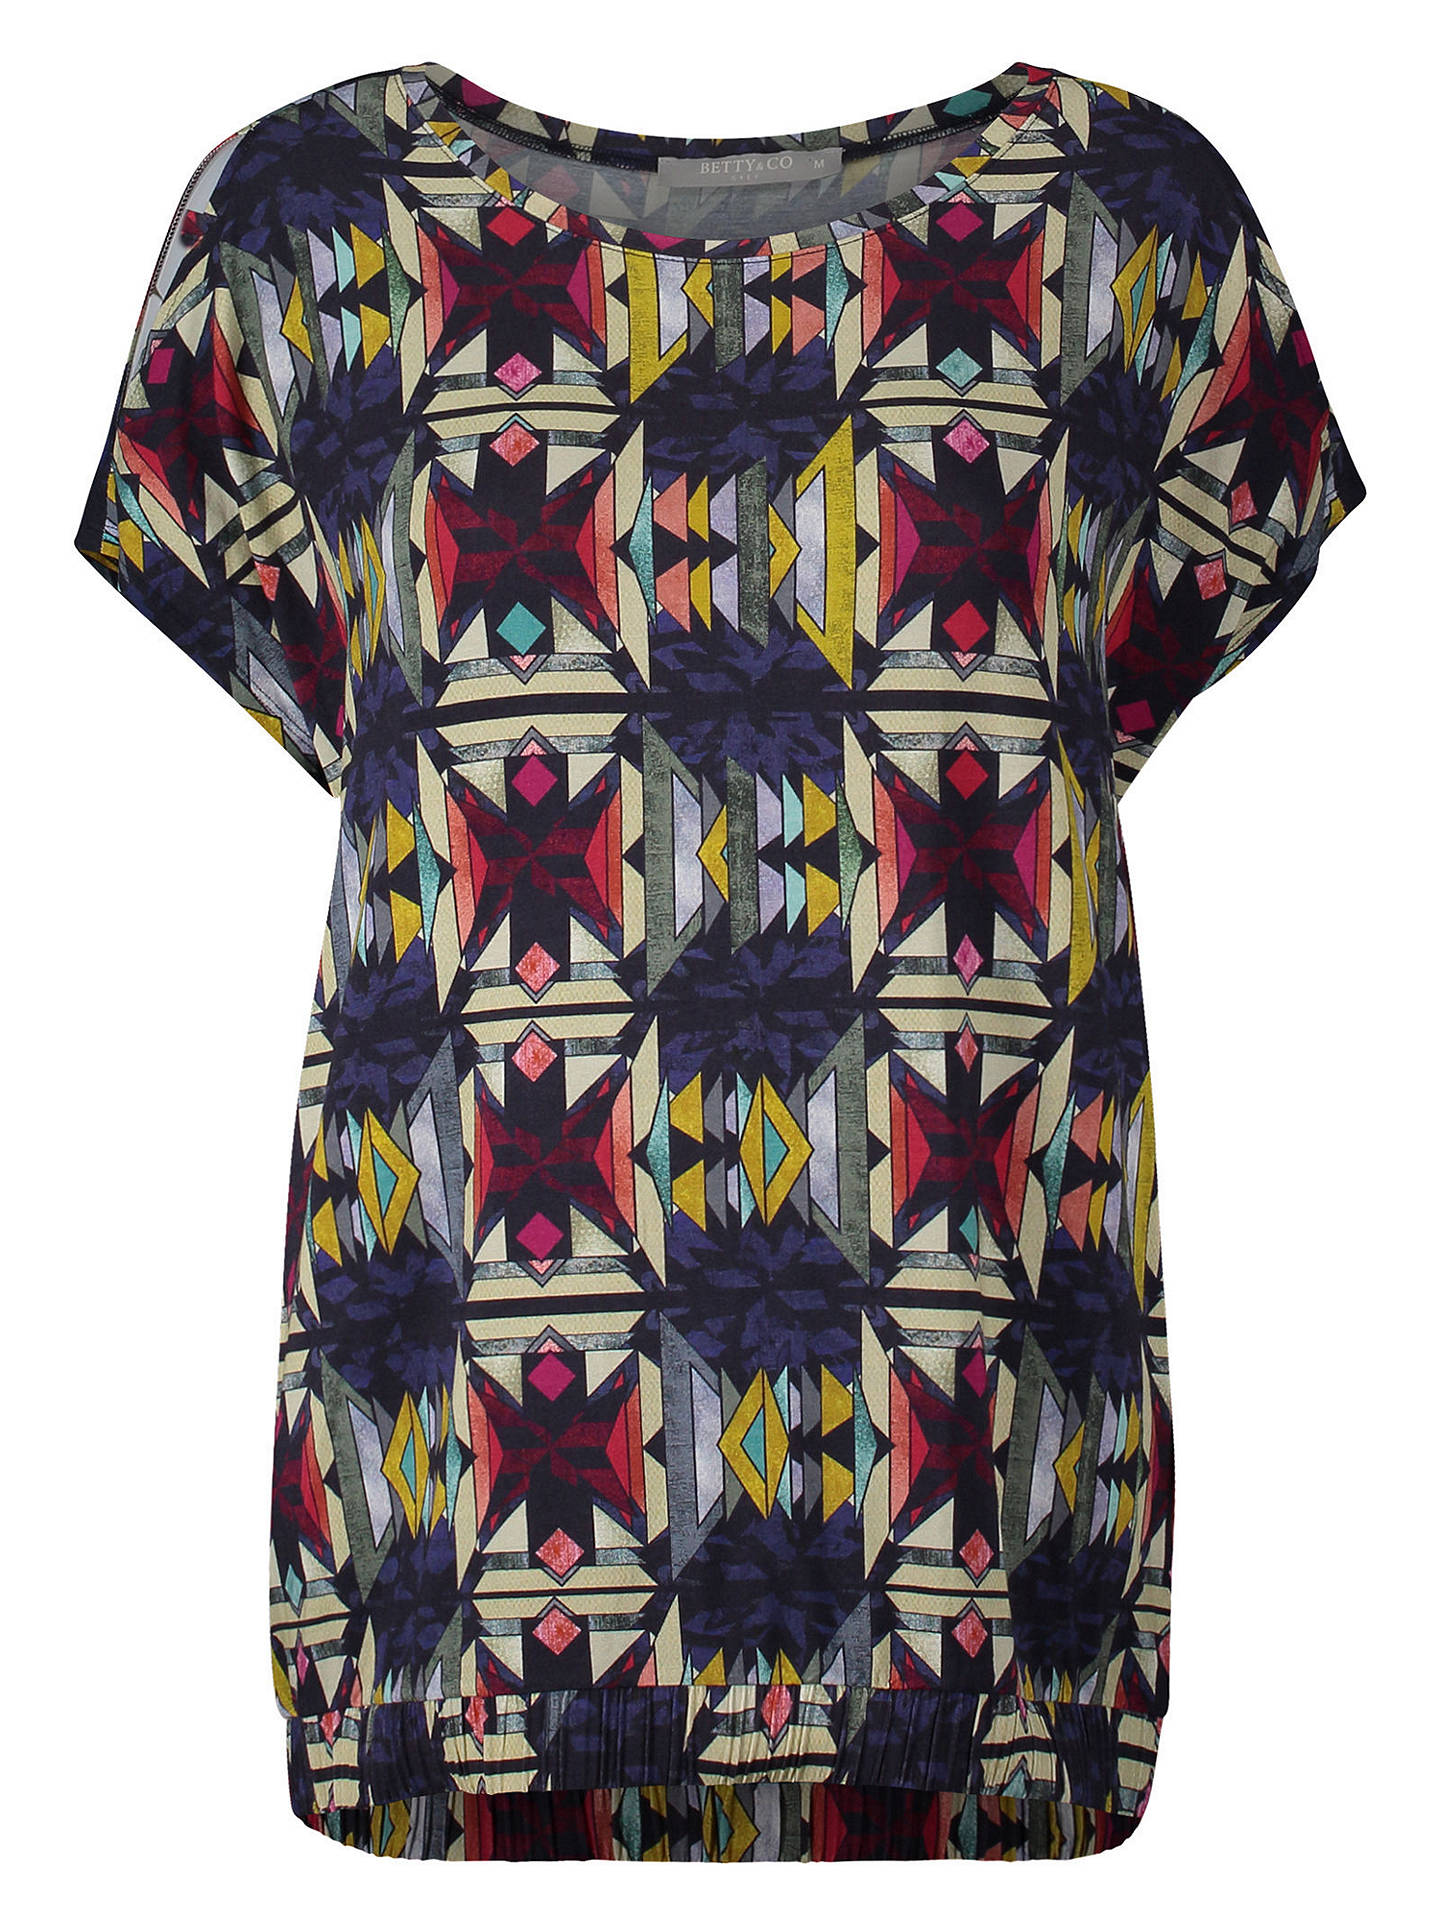 BuyBetty Barclay Aztec Print T-Shirt, Multi, L Online at johnlewis.com